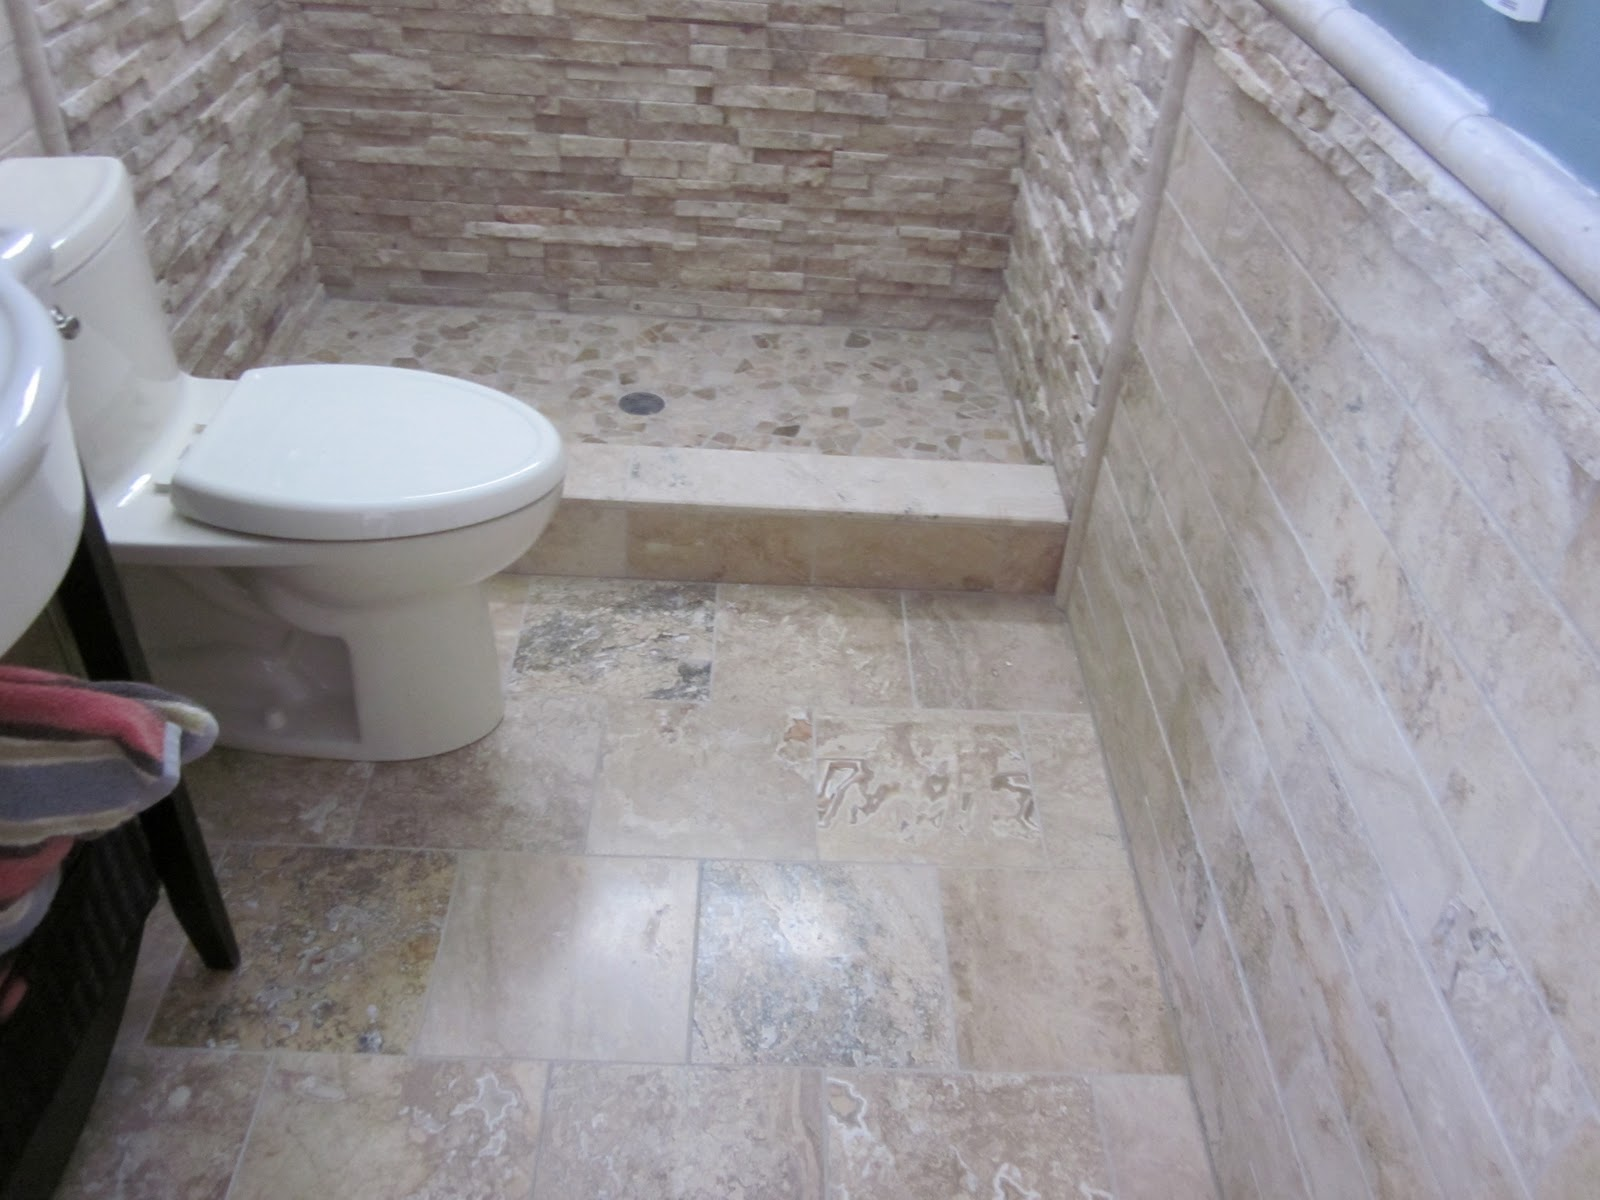 Not Using Tiles Bathroom Ideas: 3 Most Efficient Bathroom Remodeling Ideas